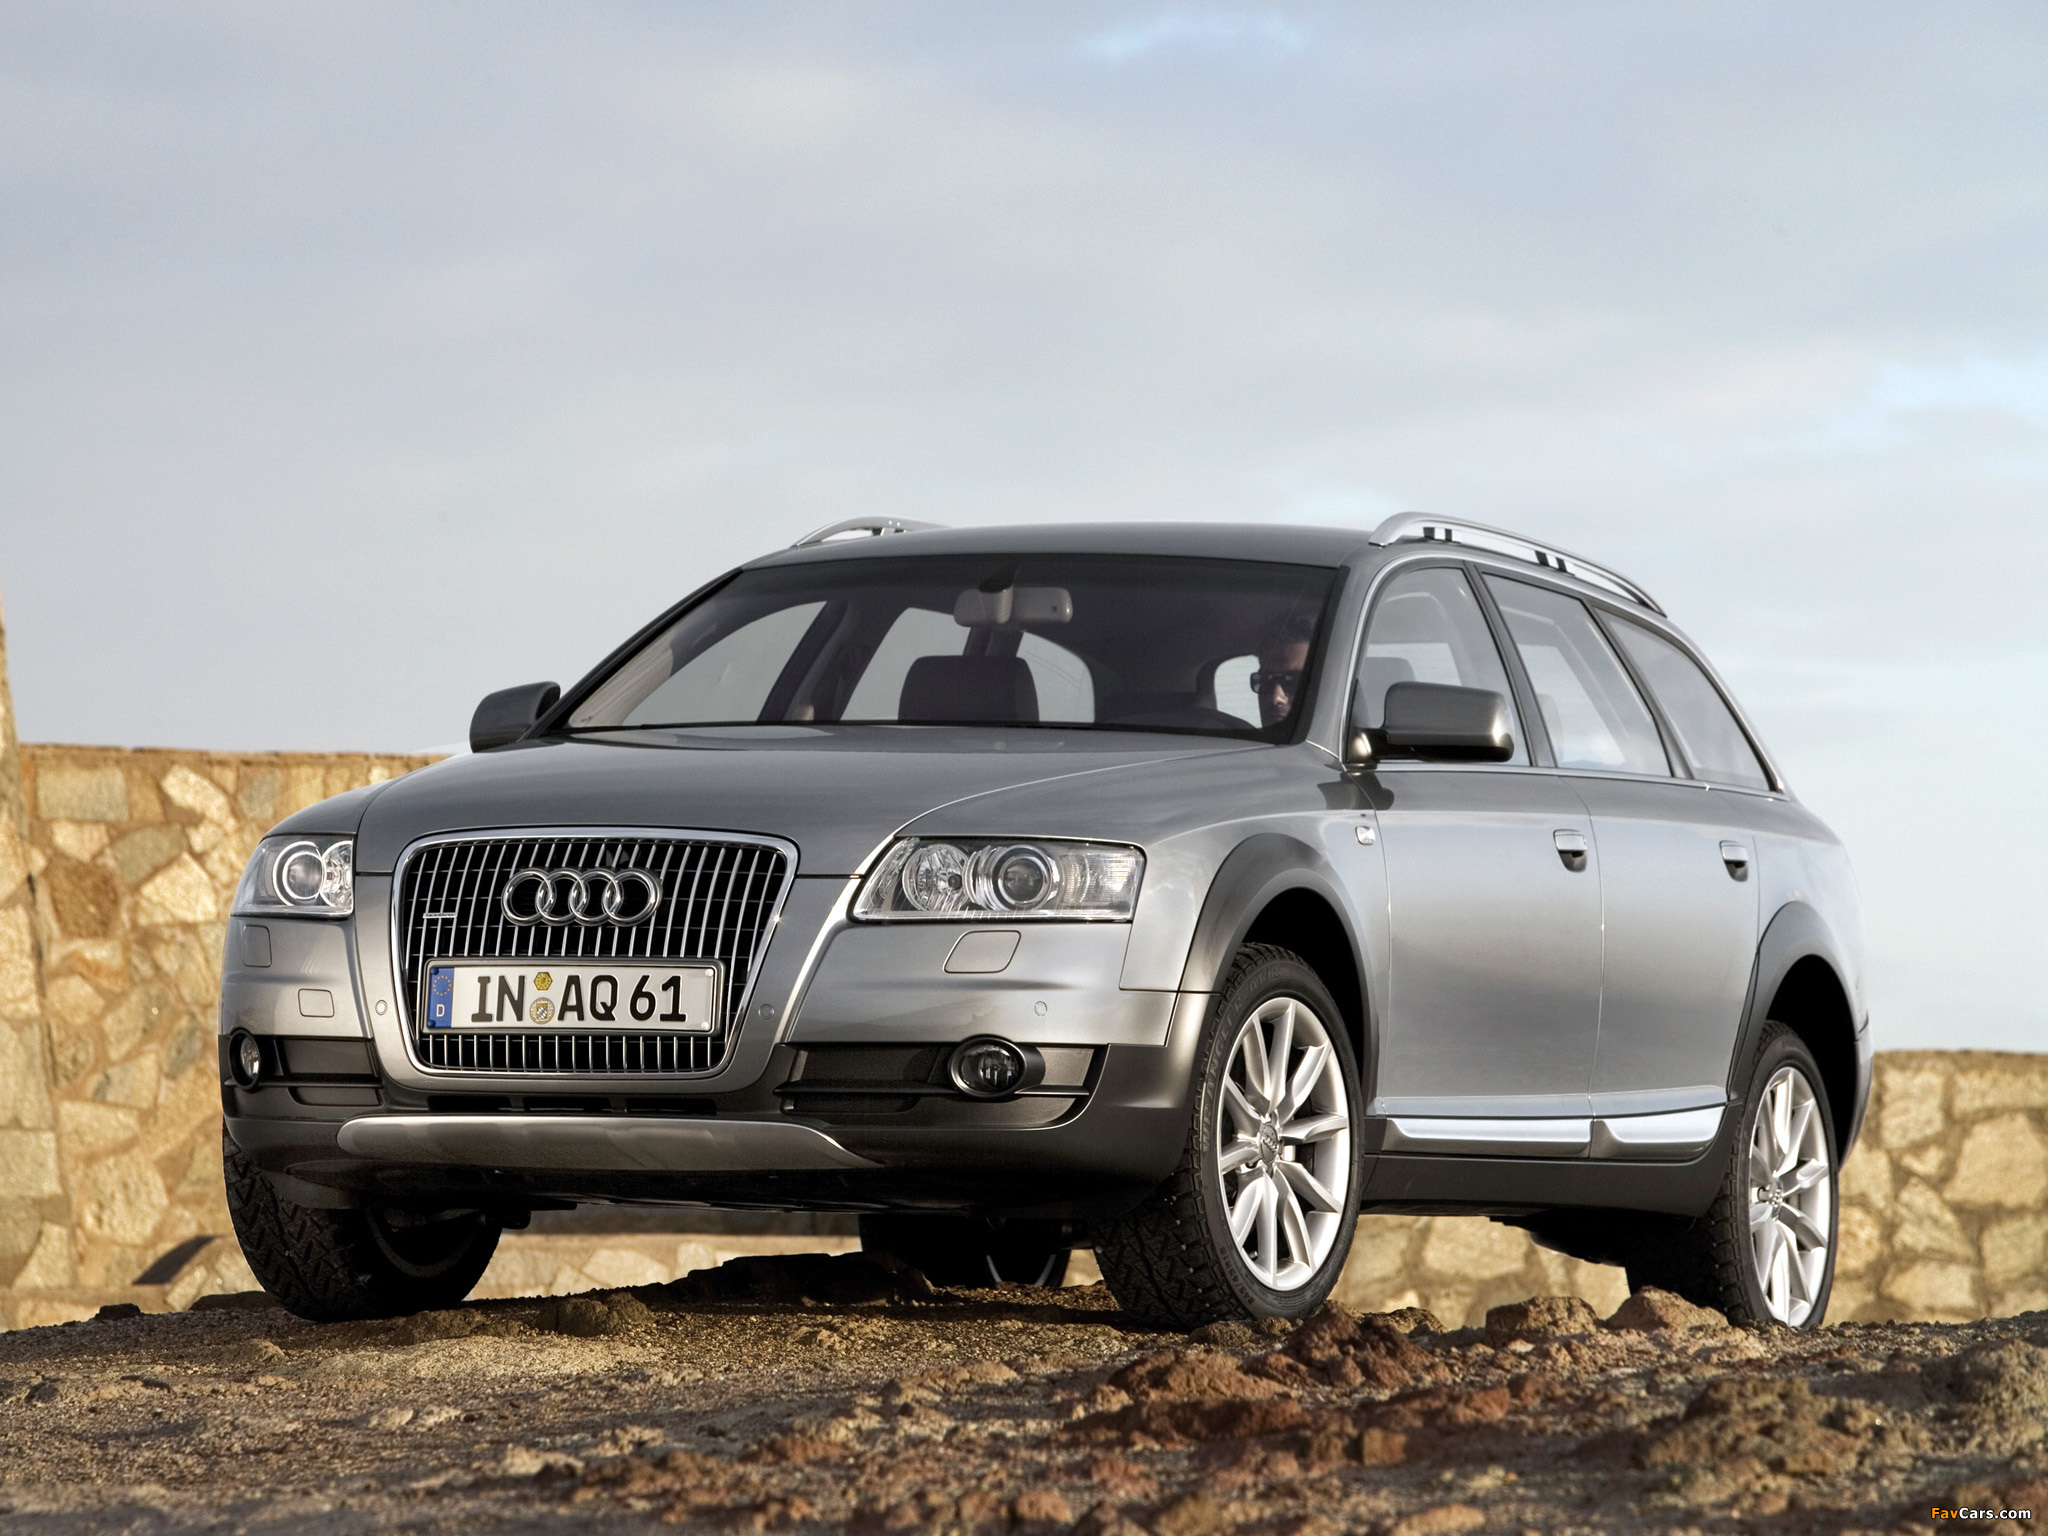 Photos Of Audi A6 Allroad 4 2 Quattro 4f C6 2006 08